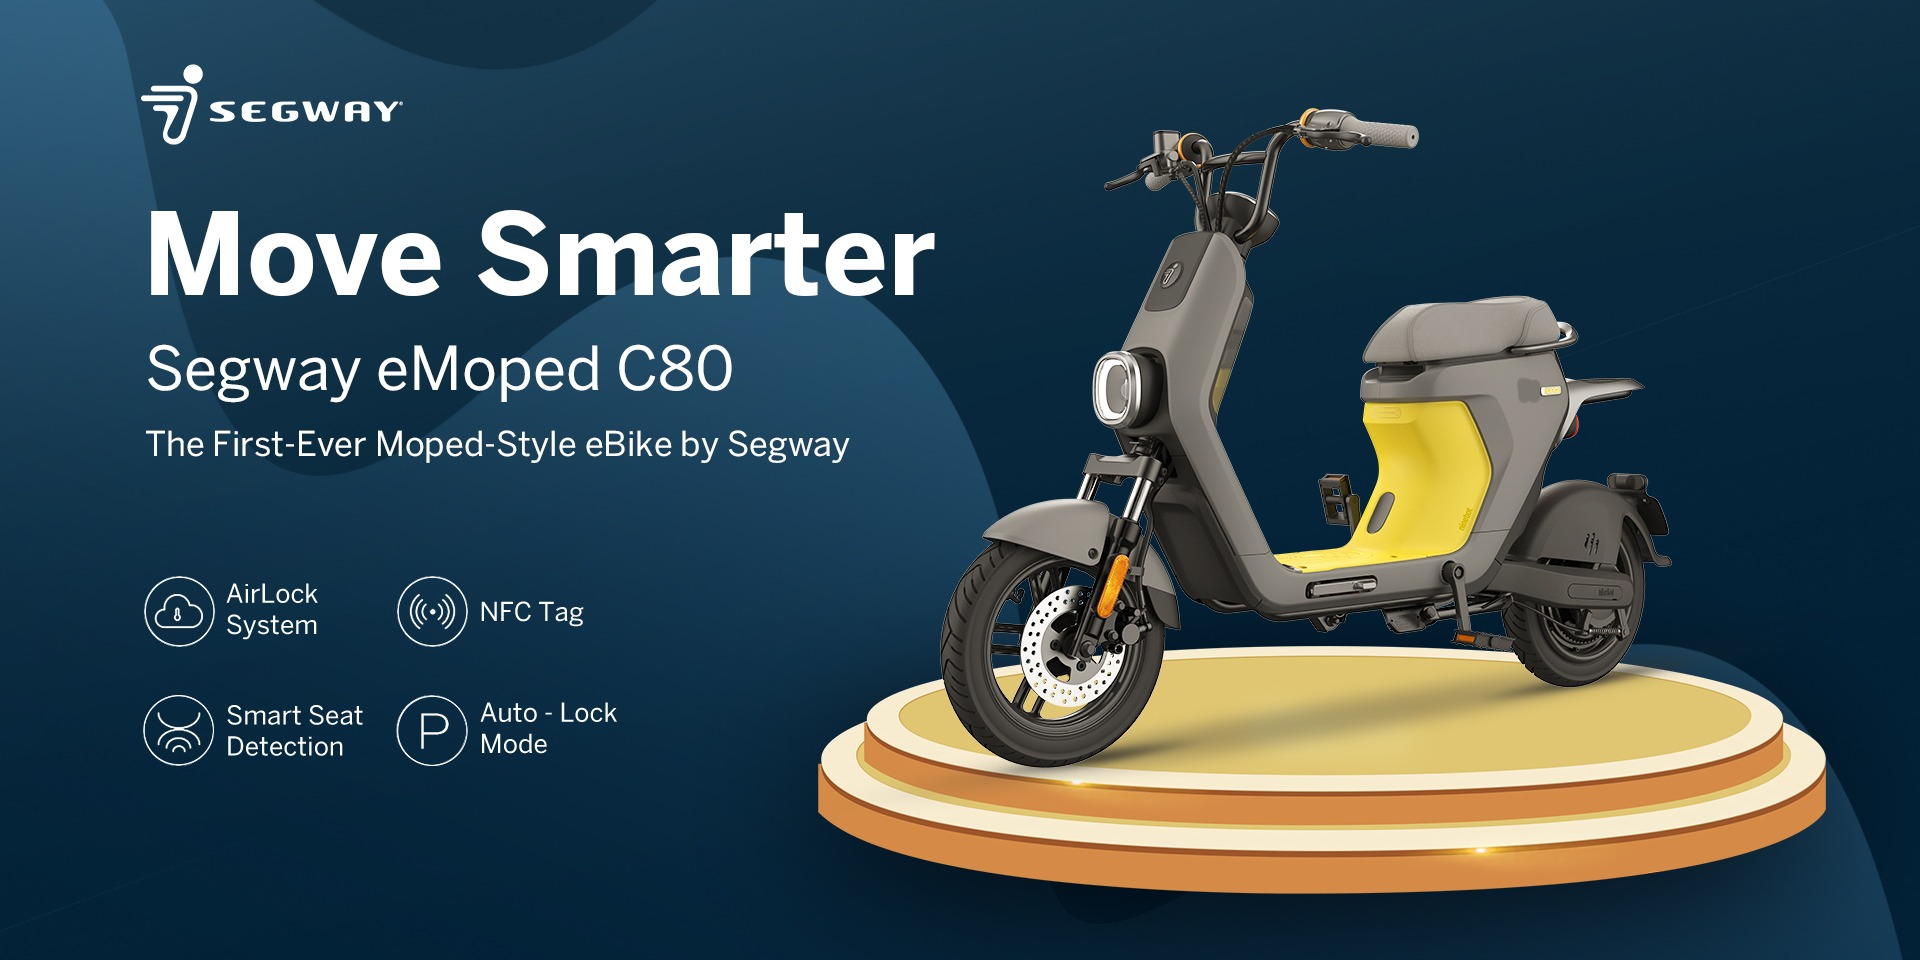 Segway just launched this affordable 50-mile range electric moped in the US